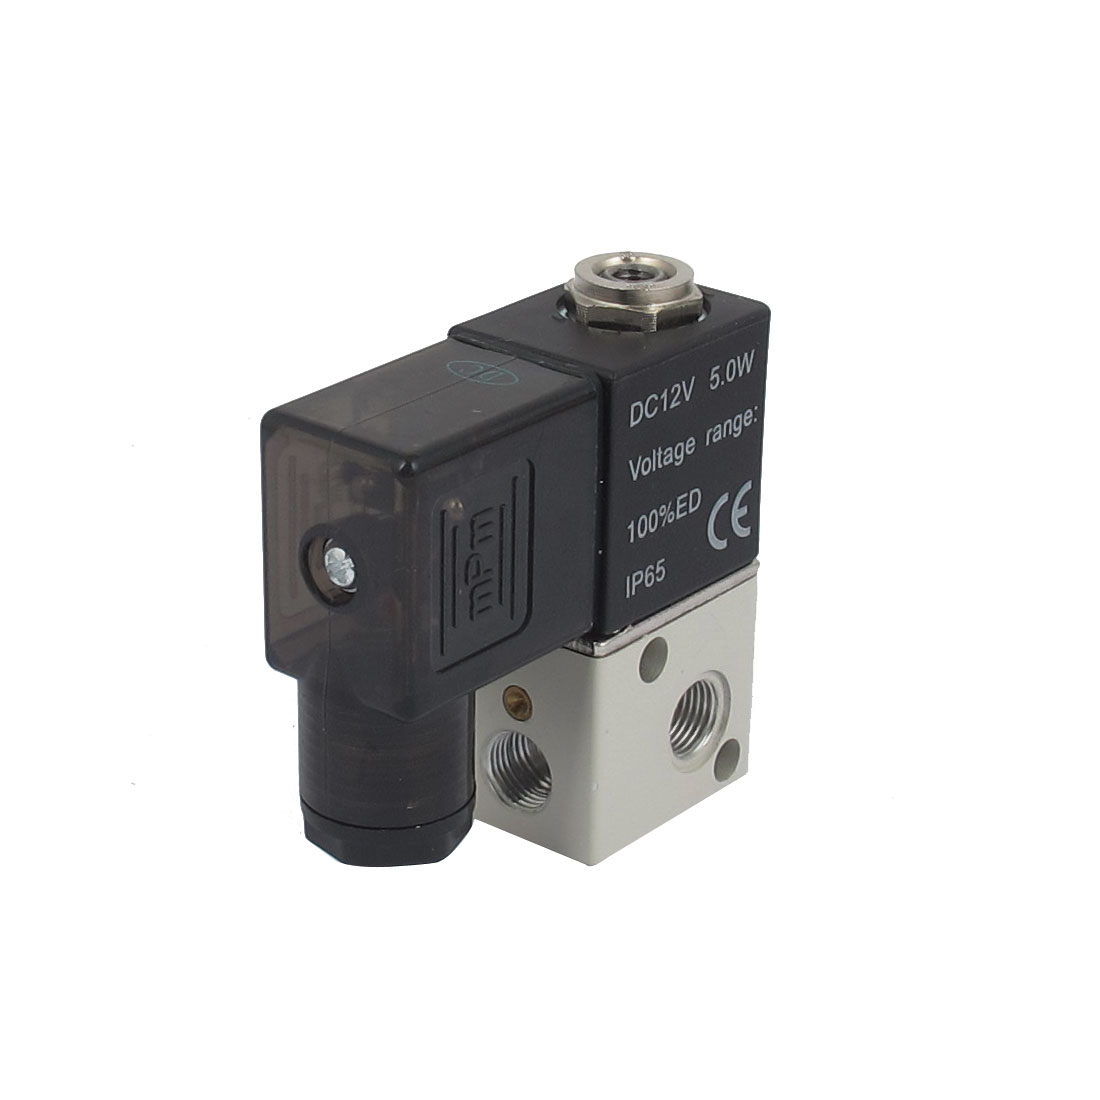 DC12V 5W 2 Position 3 Way Electrical Pneumatic Control Air Solenoid Valve